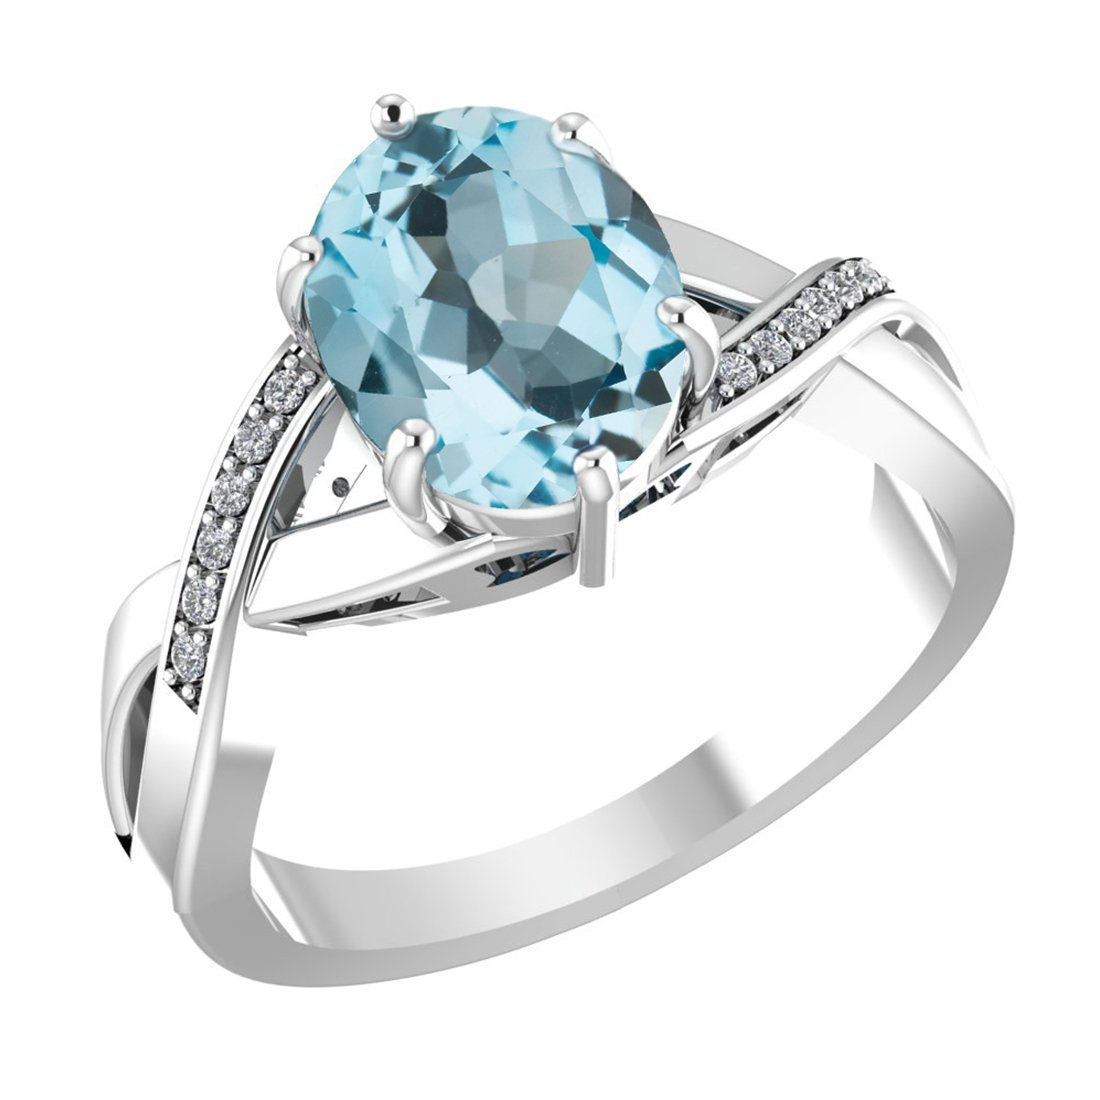 Belinda Jewelz 925 Solid Real Sterling Silver 8x10 mm Oval Gemstone Prong Setting Diamond Rhodium Plated Engagement Wedding Classic Womens Fine Jewelry Twisted Band Ring, Light Sky Blue Topaz, Size 9 by Belinda Jewelz (Image #1)